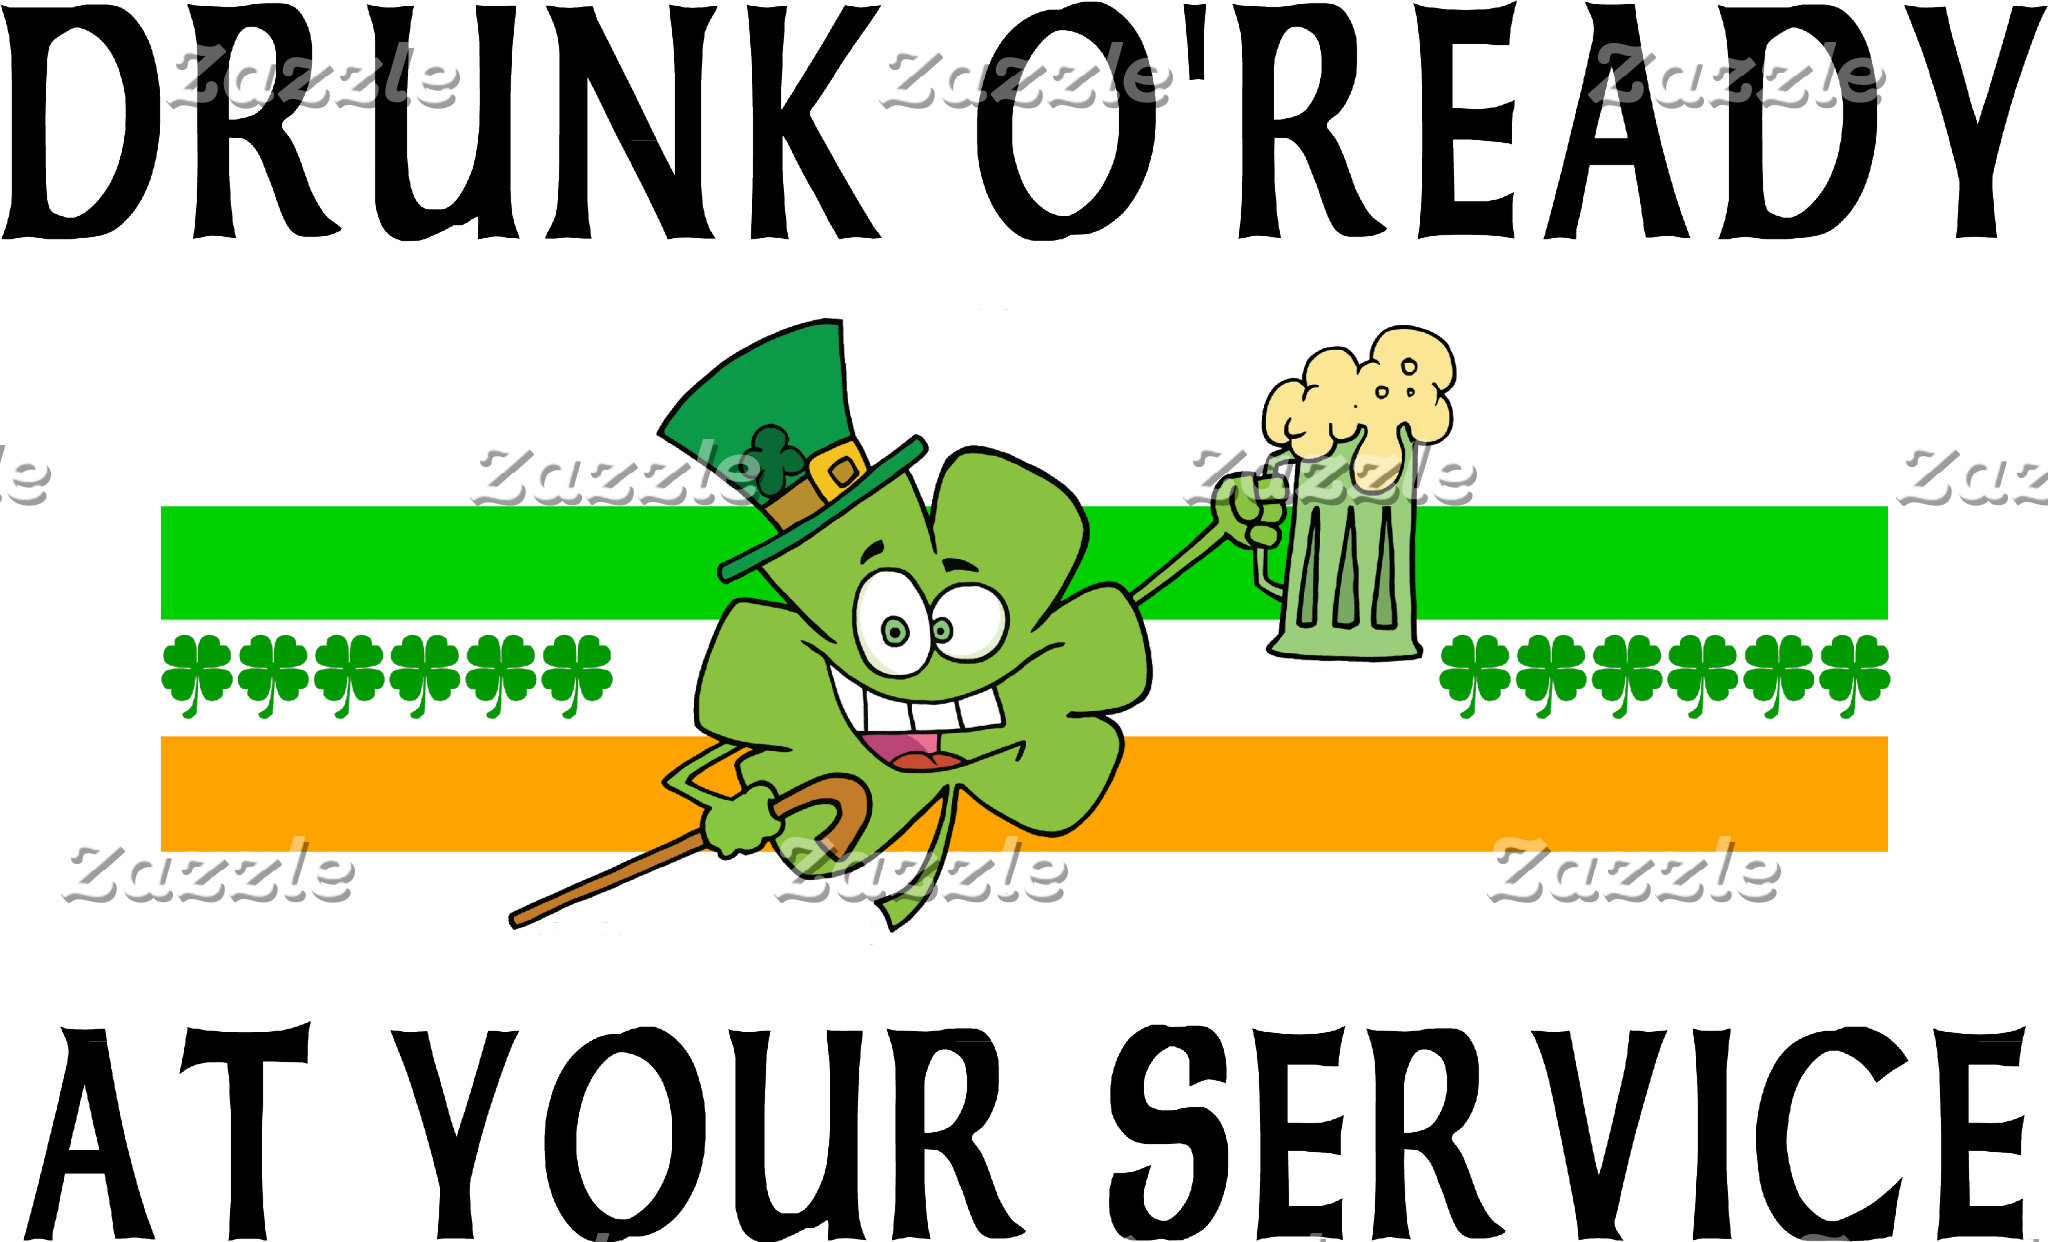 Funny Drunk Irish T-Shirt Gifts